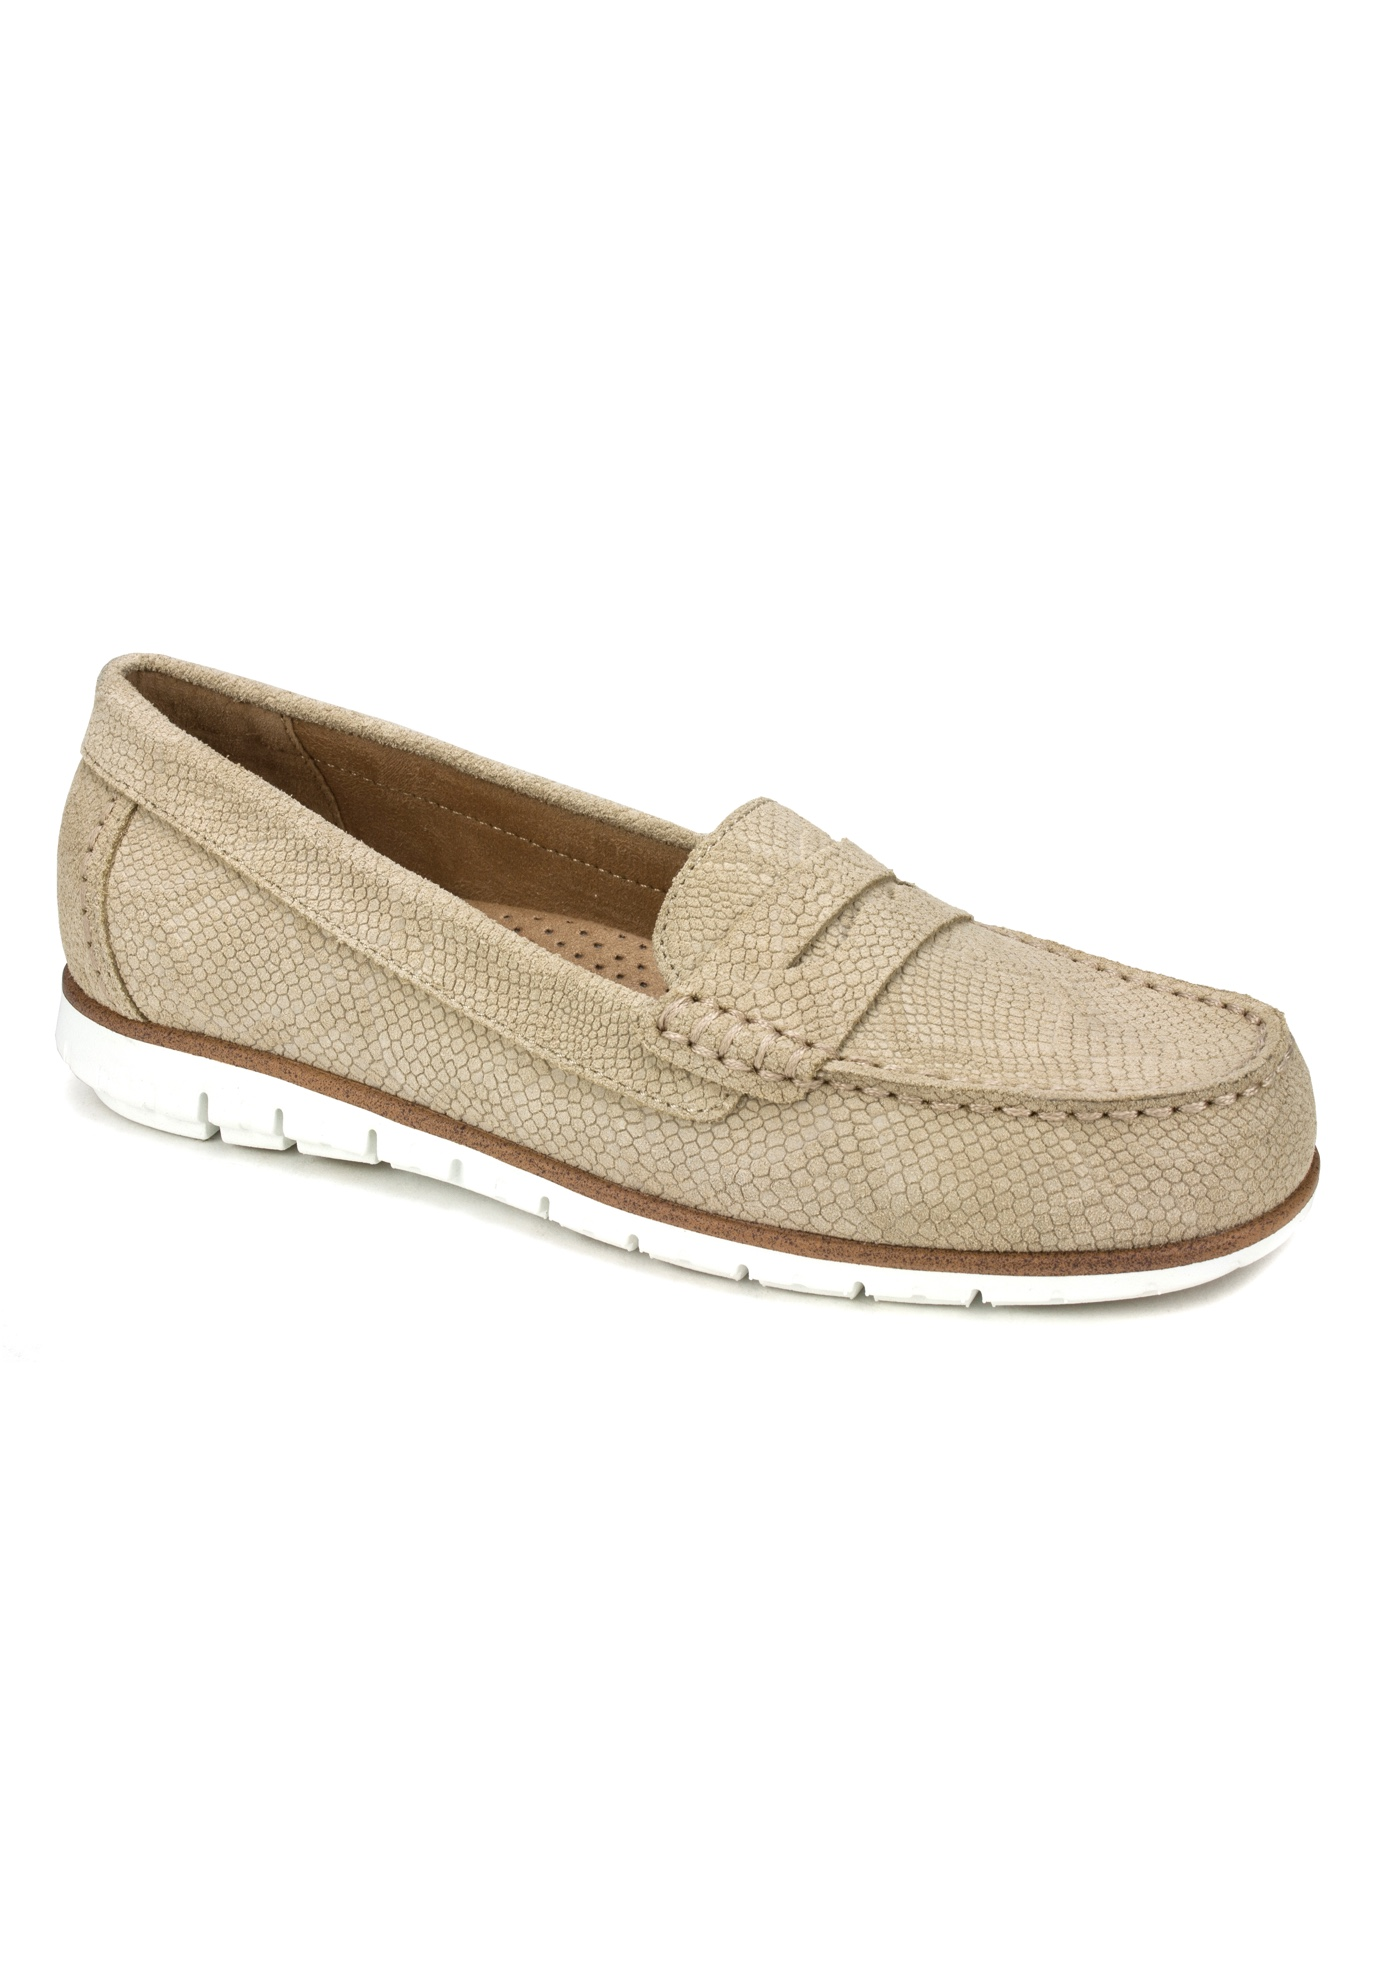 Brianna Loafer by White Mountain,